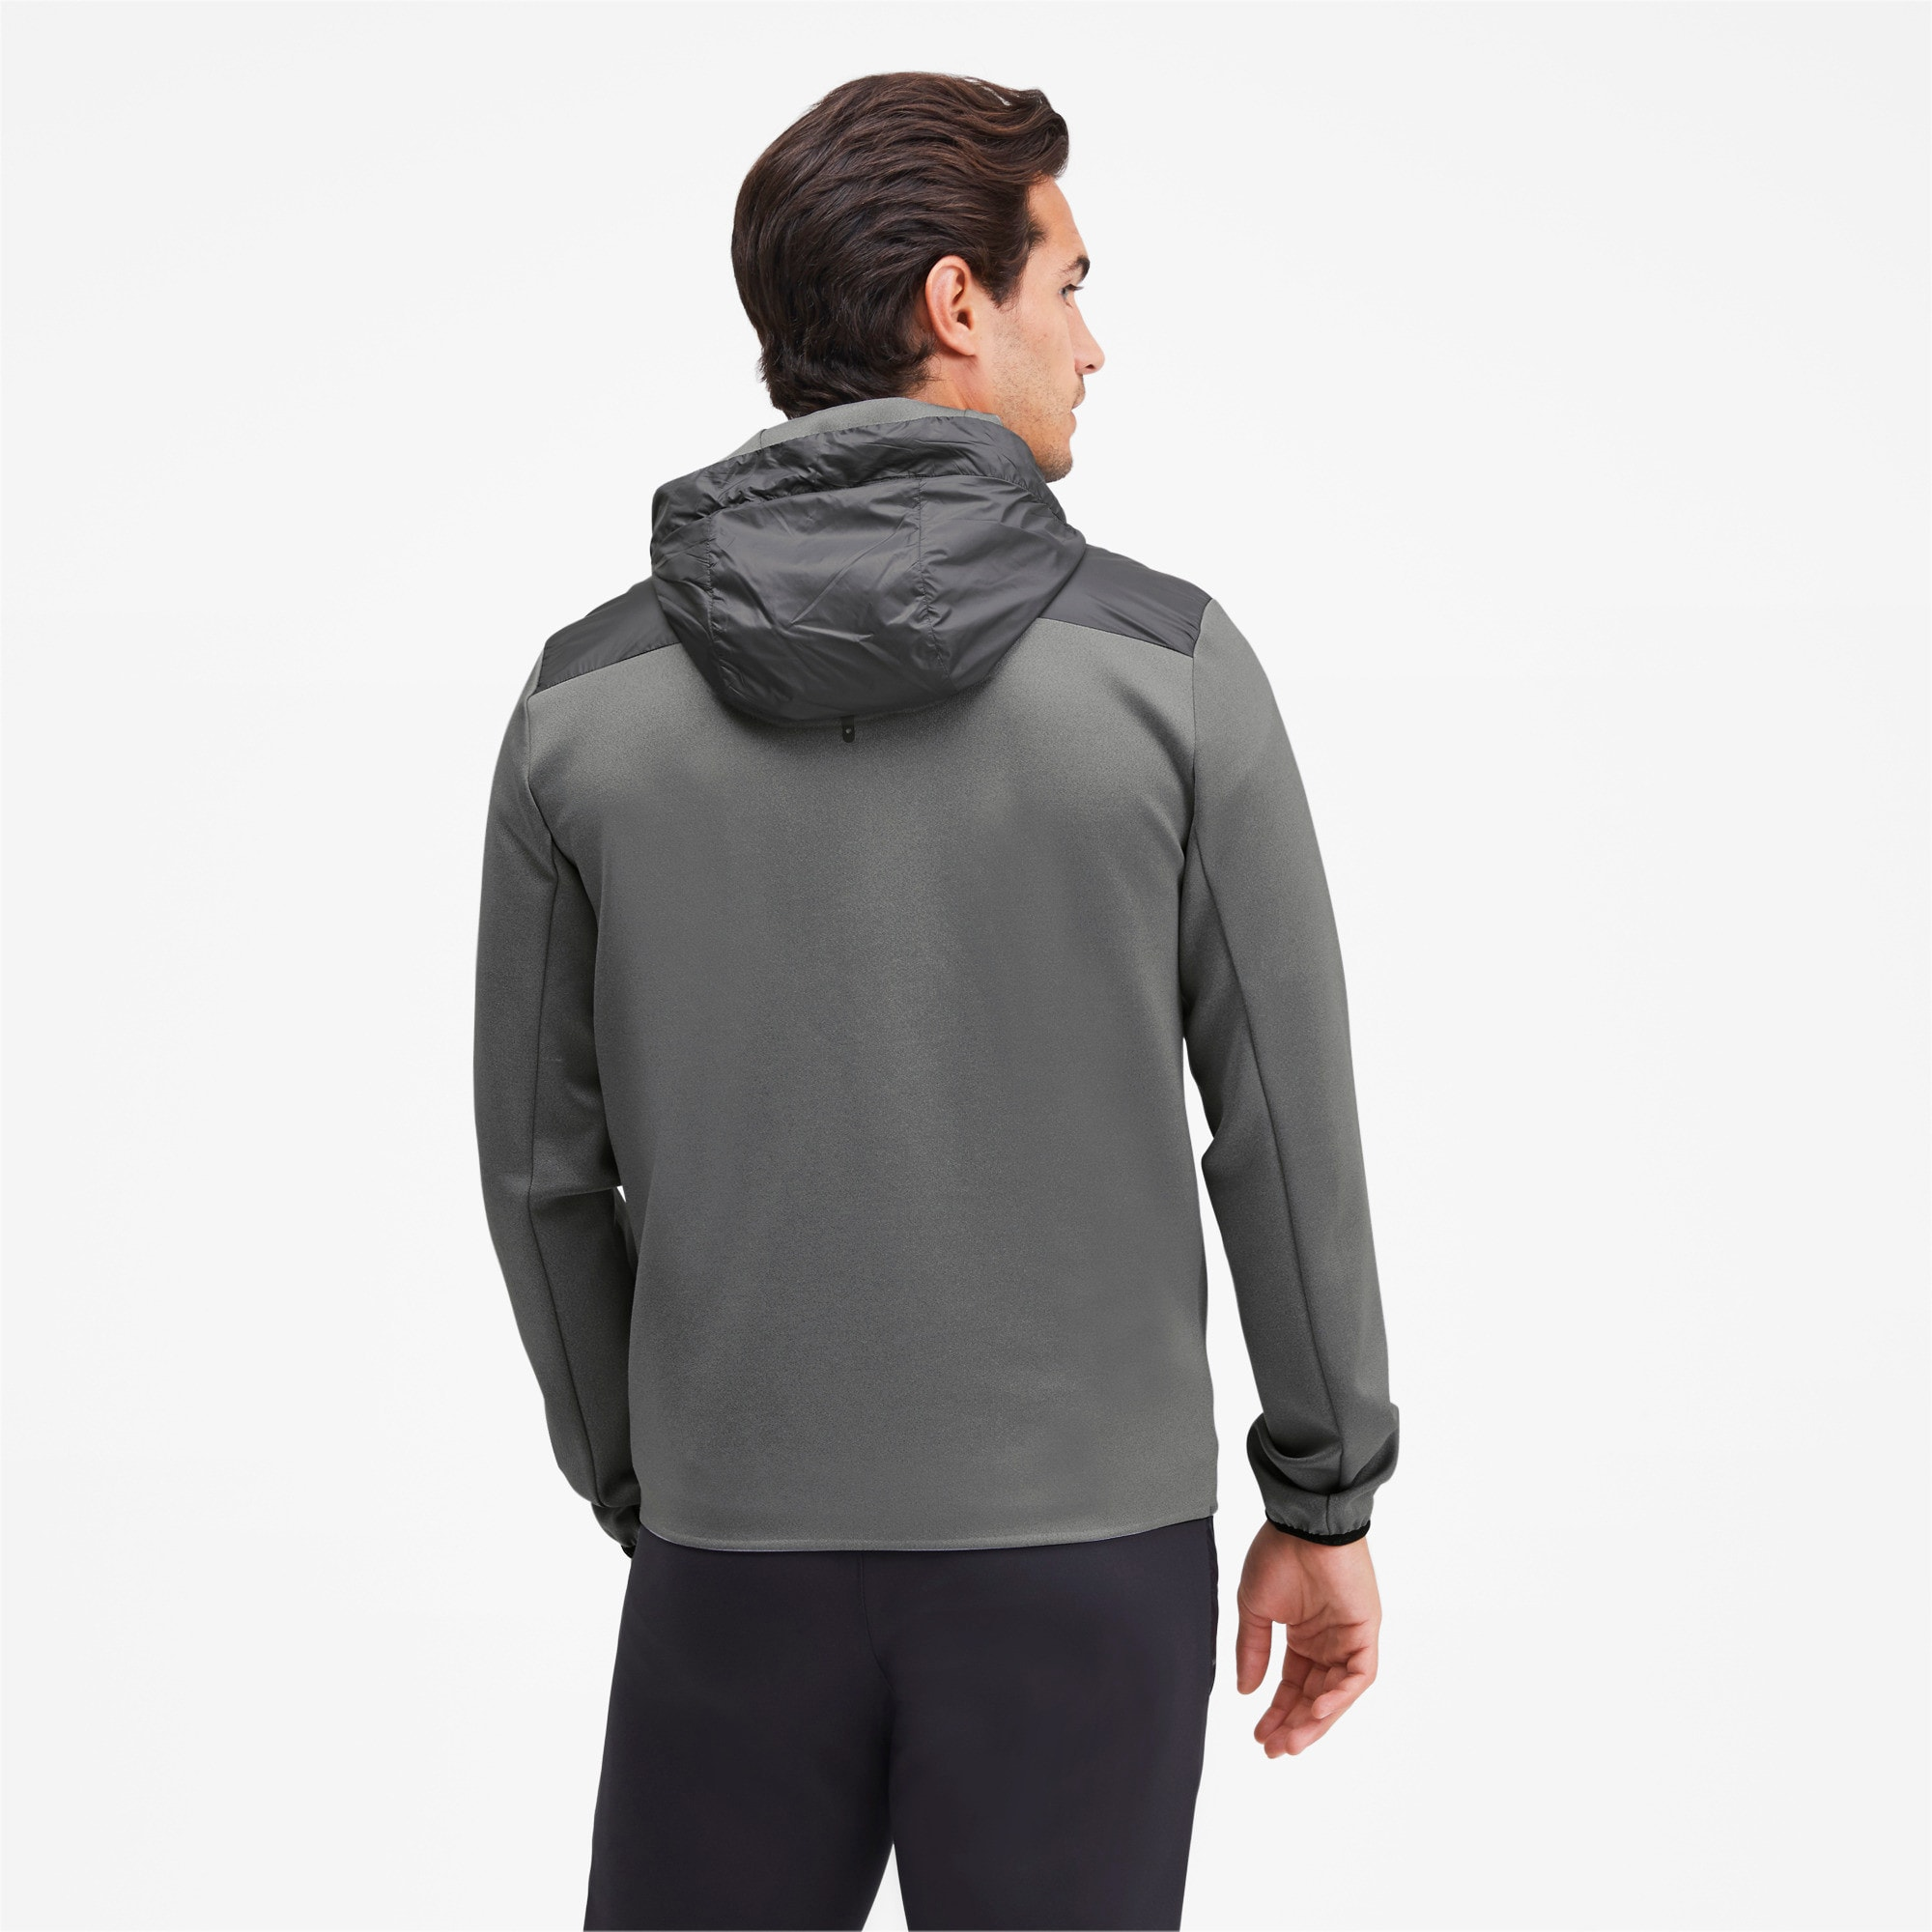 Thumbnail 2 of Porsche Design Spacer Hooded Men's Midlayer, Medium Gray Heather, medium